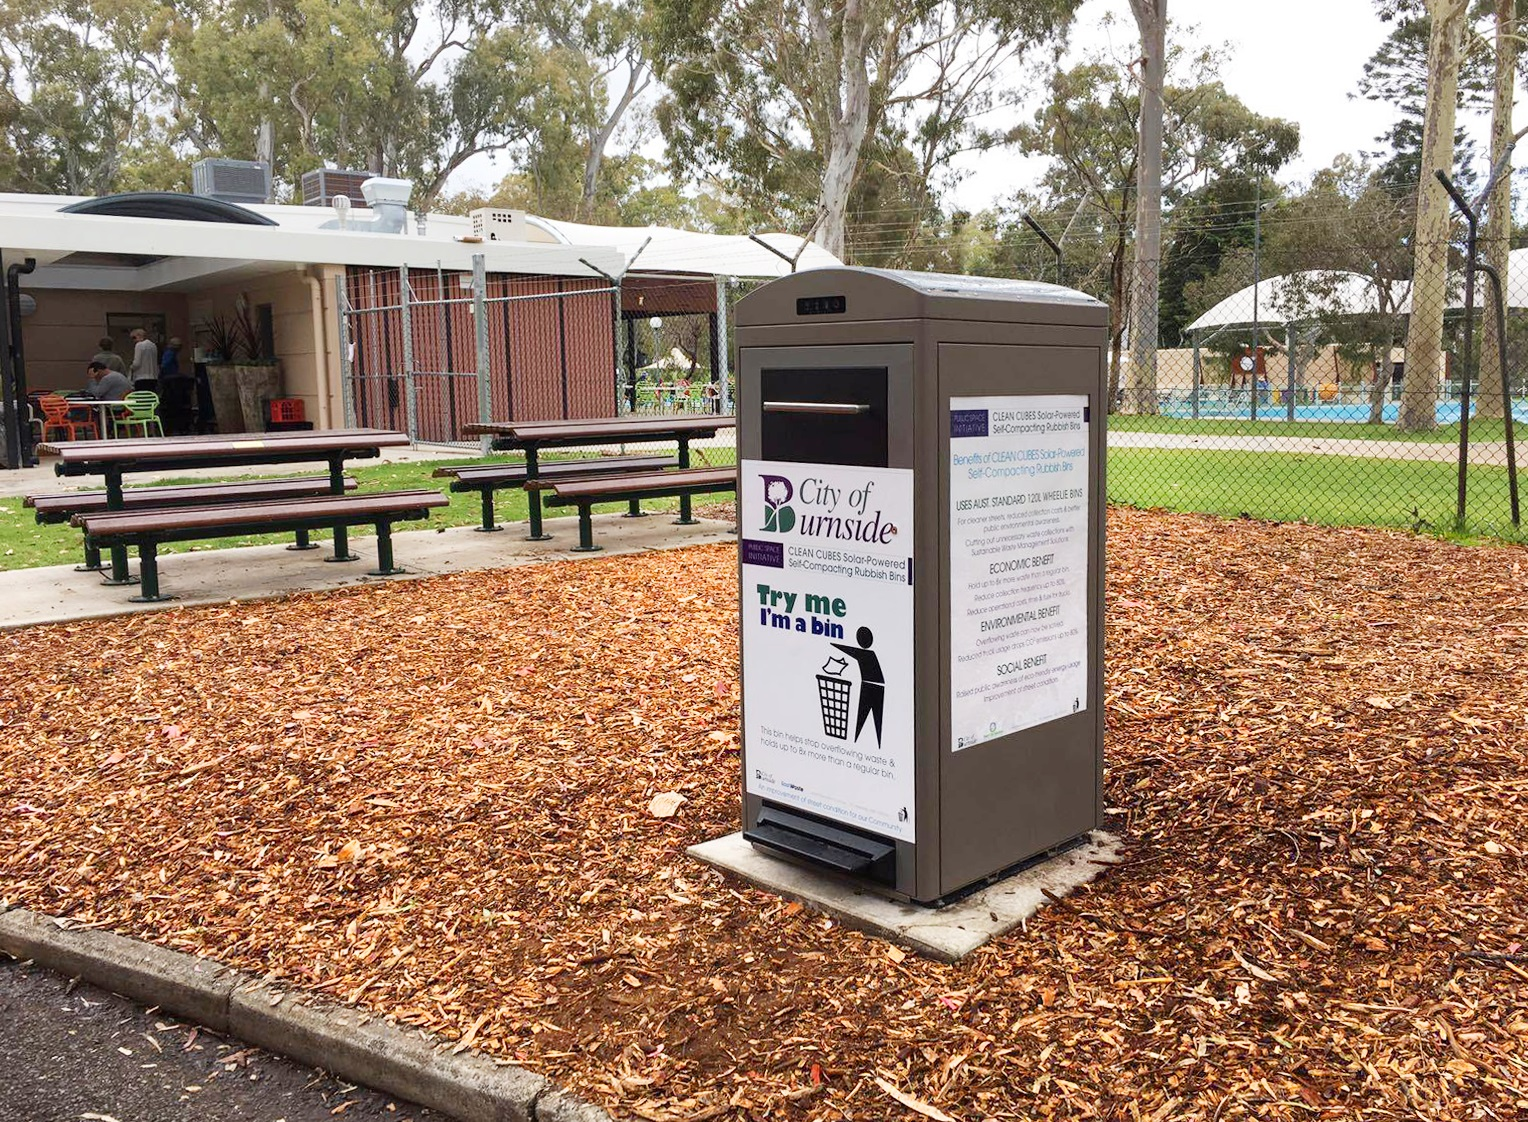 Solar waste compactor in Burnside, Australia